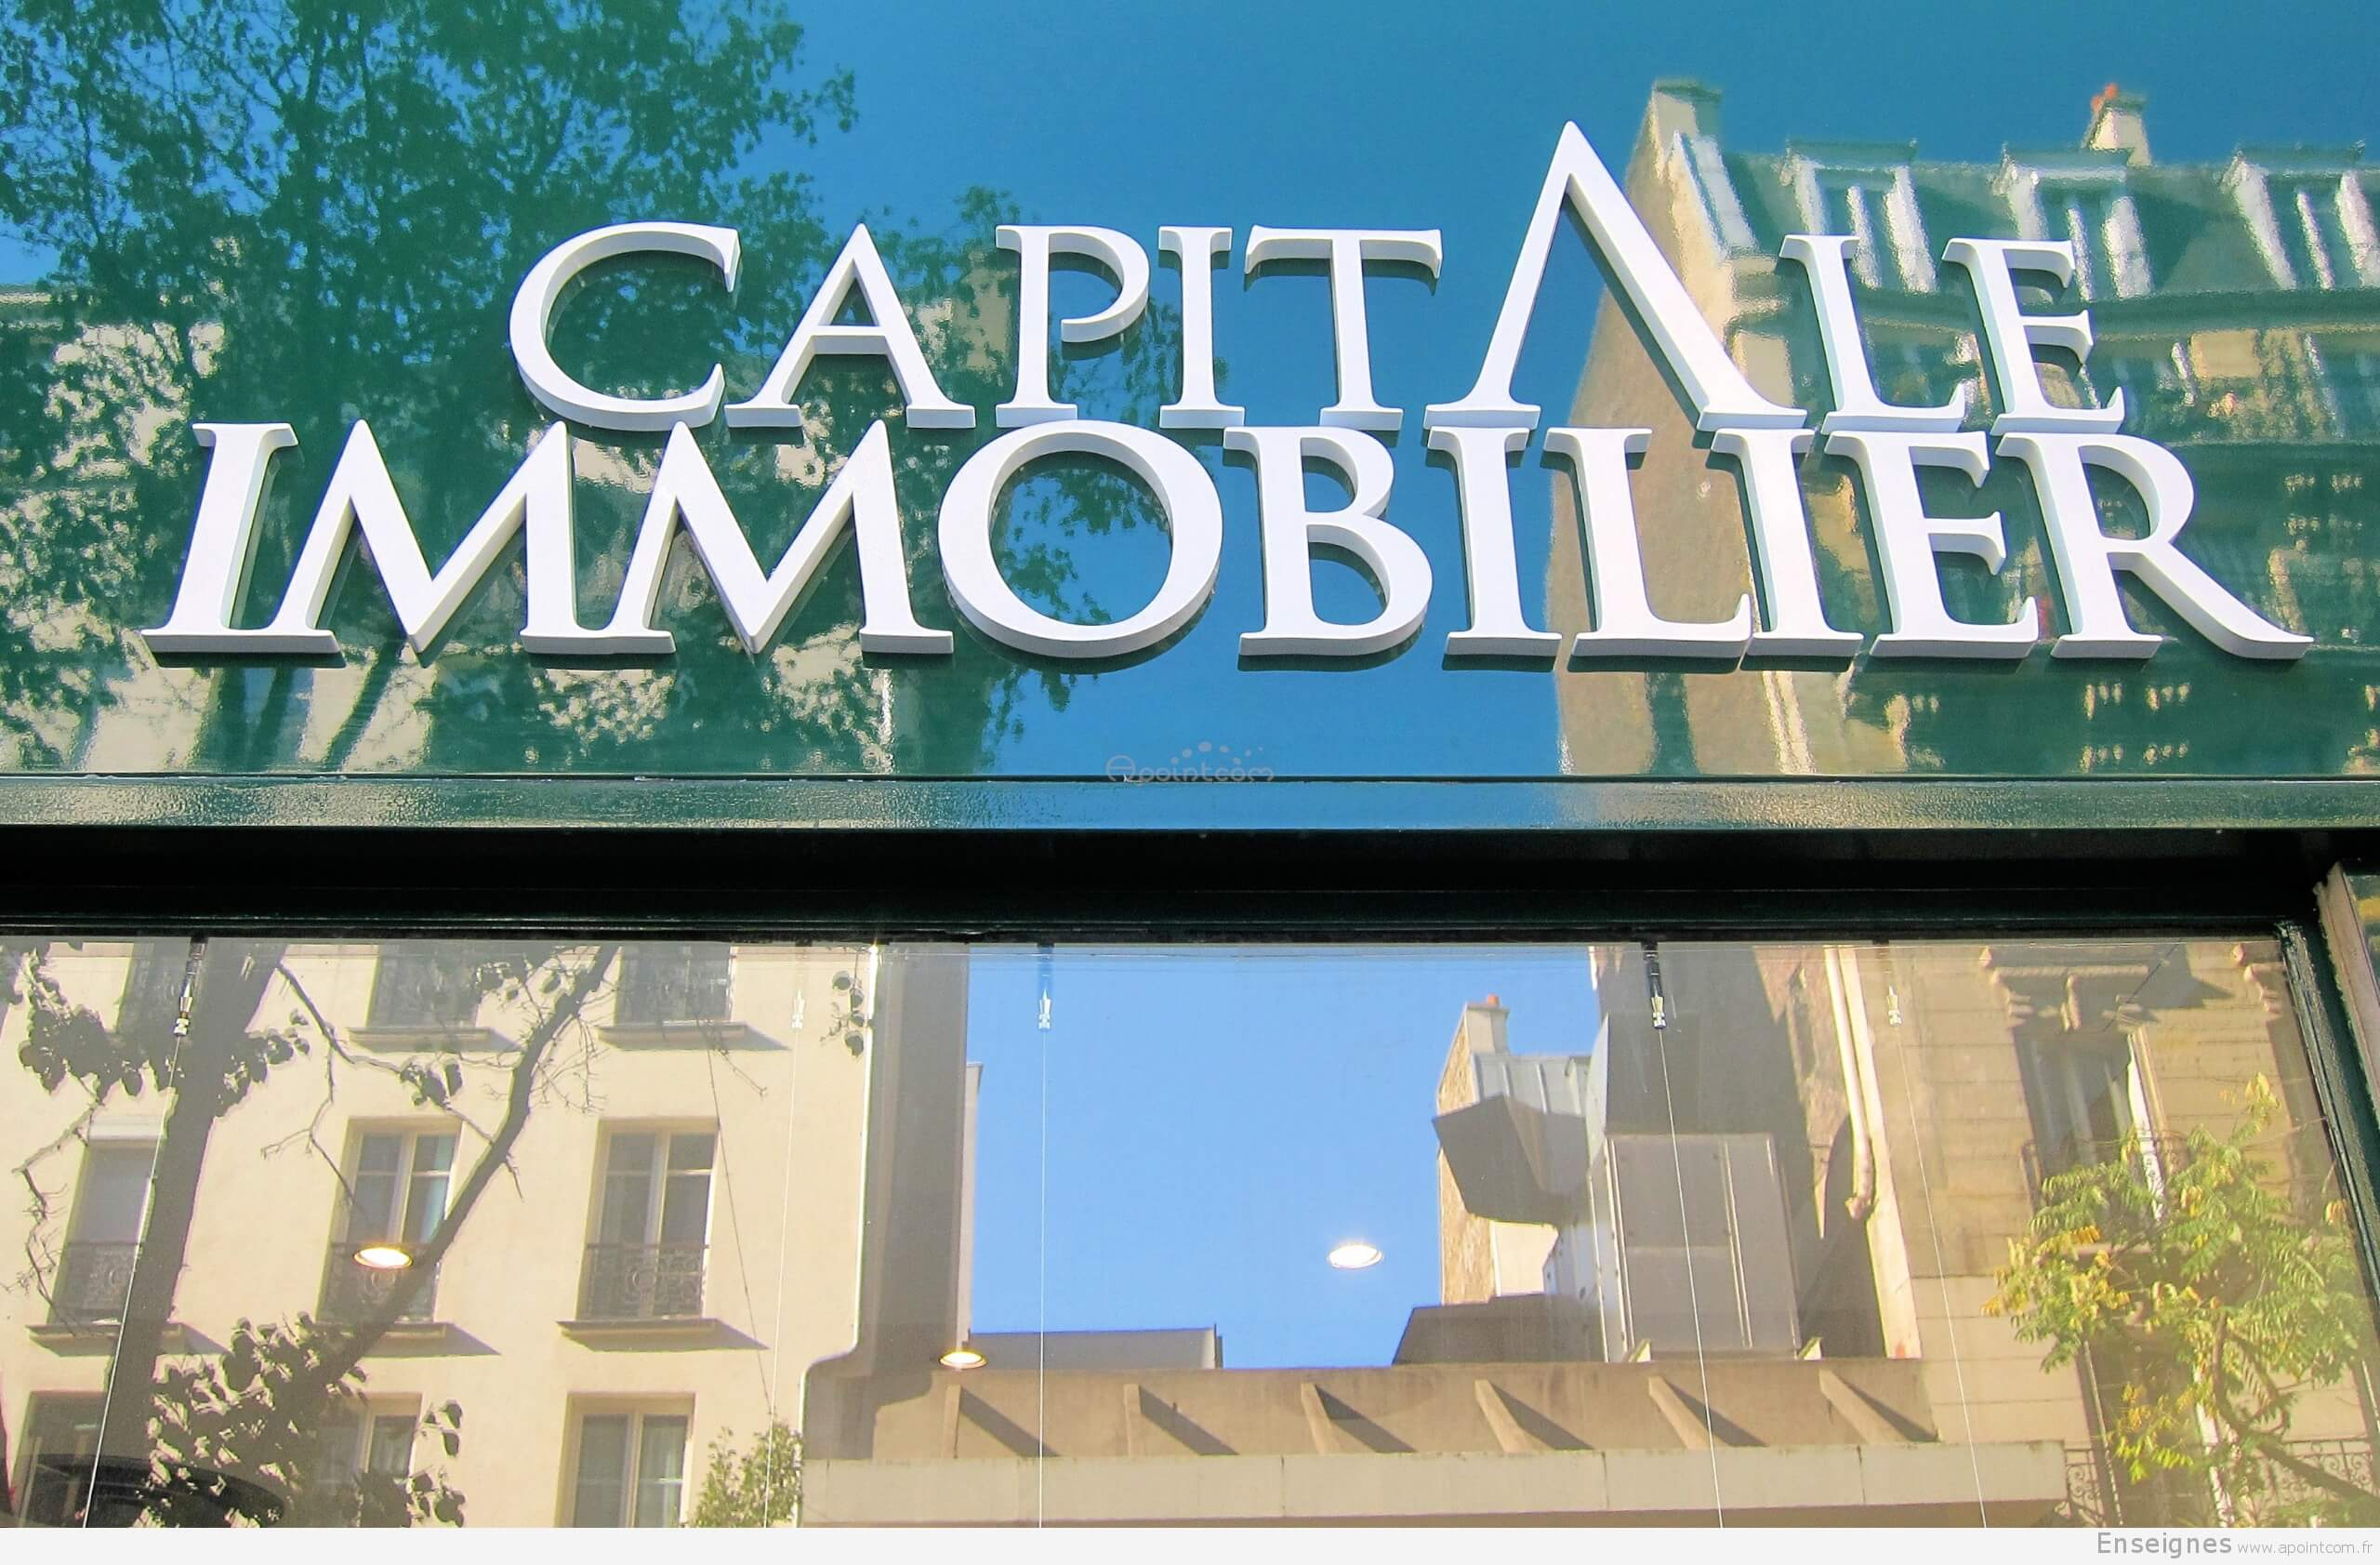 Enseigne agence immobili re paris capital immobilier for Agence immobiliere specialisee terrasse paris